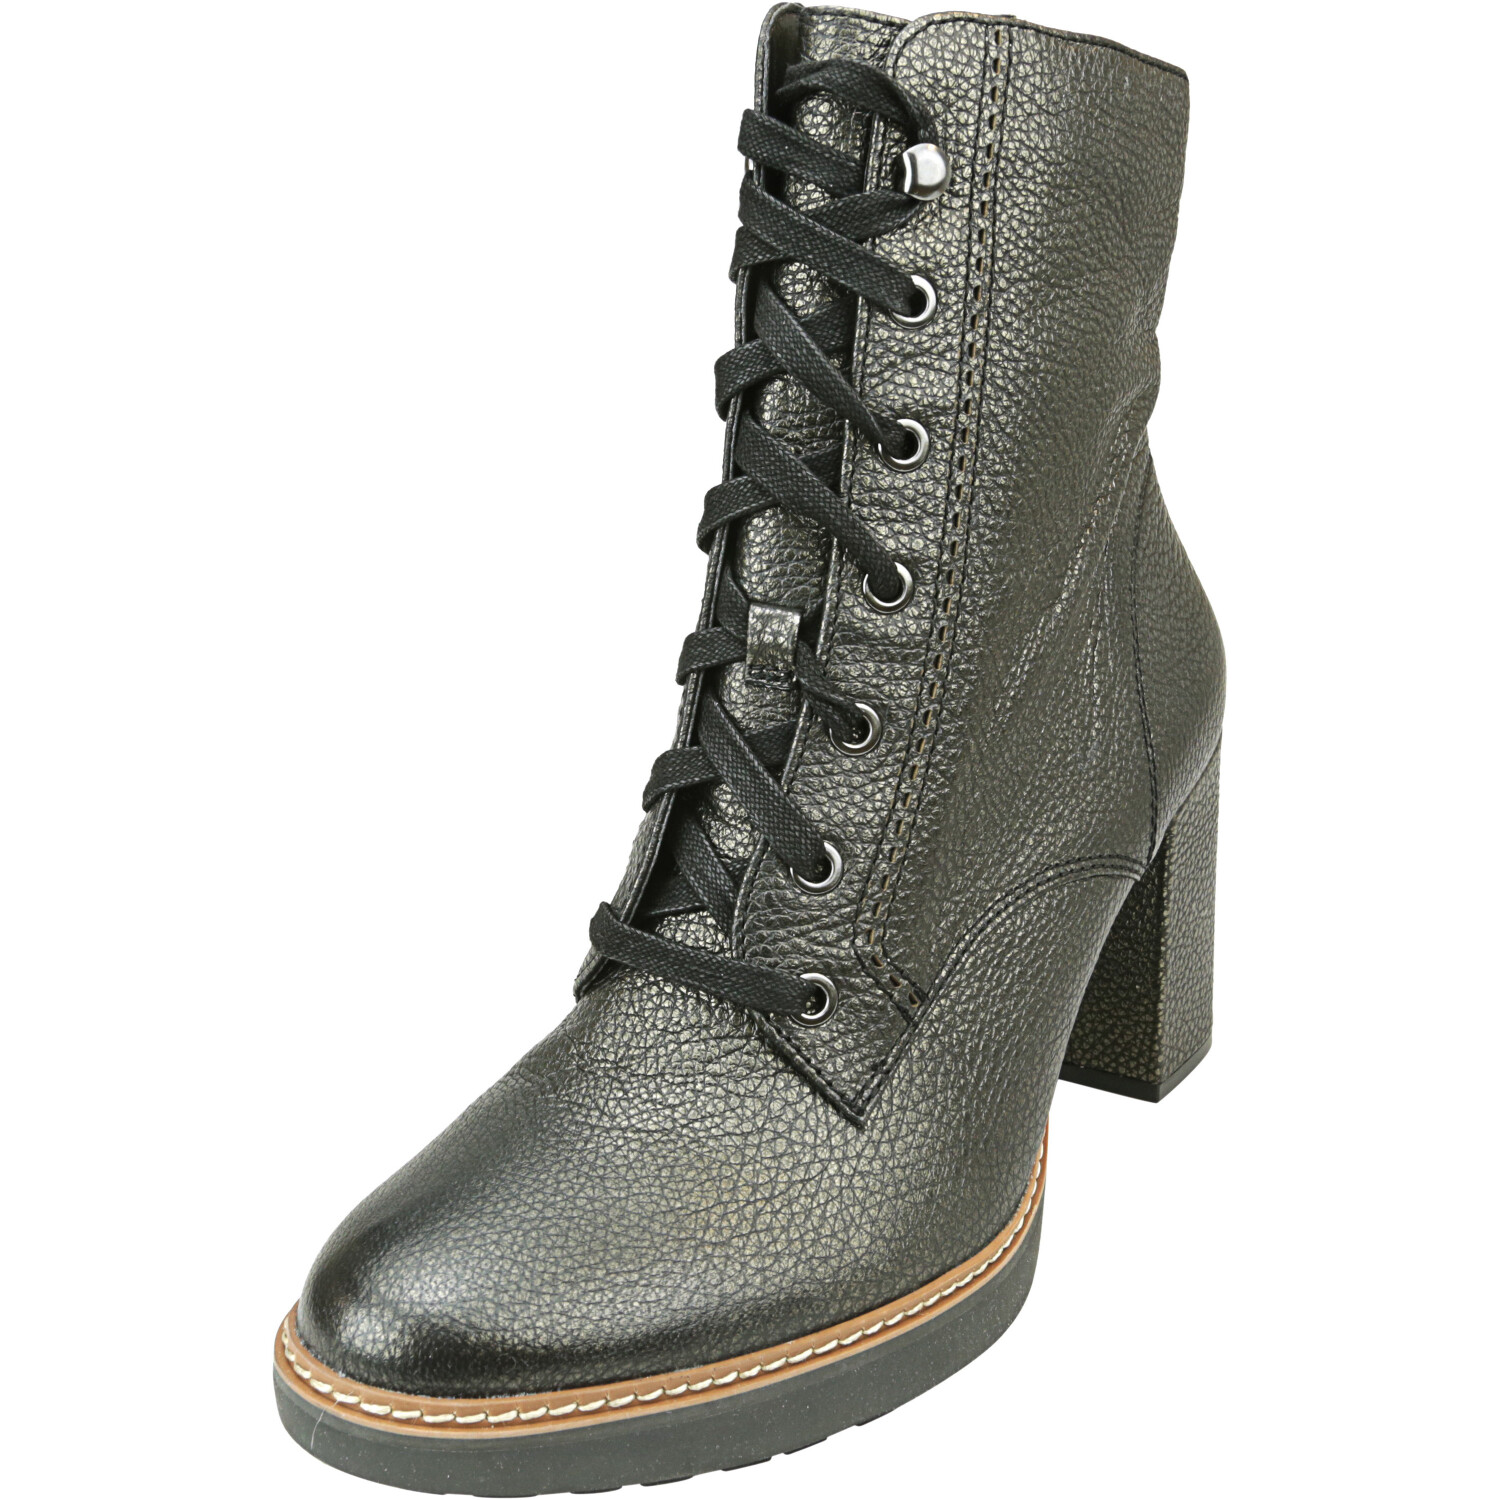 Naturalizer Women's Callie Bronze Ankle-High Leather Boot - 9.5W